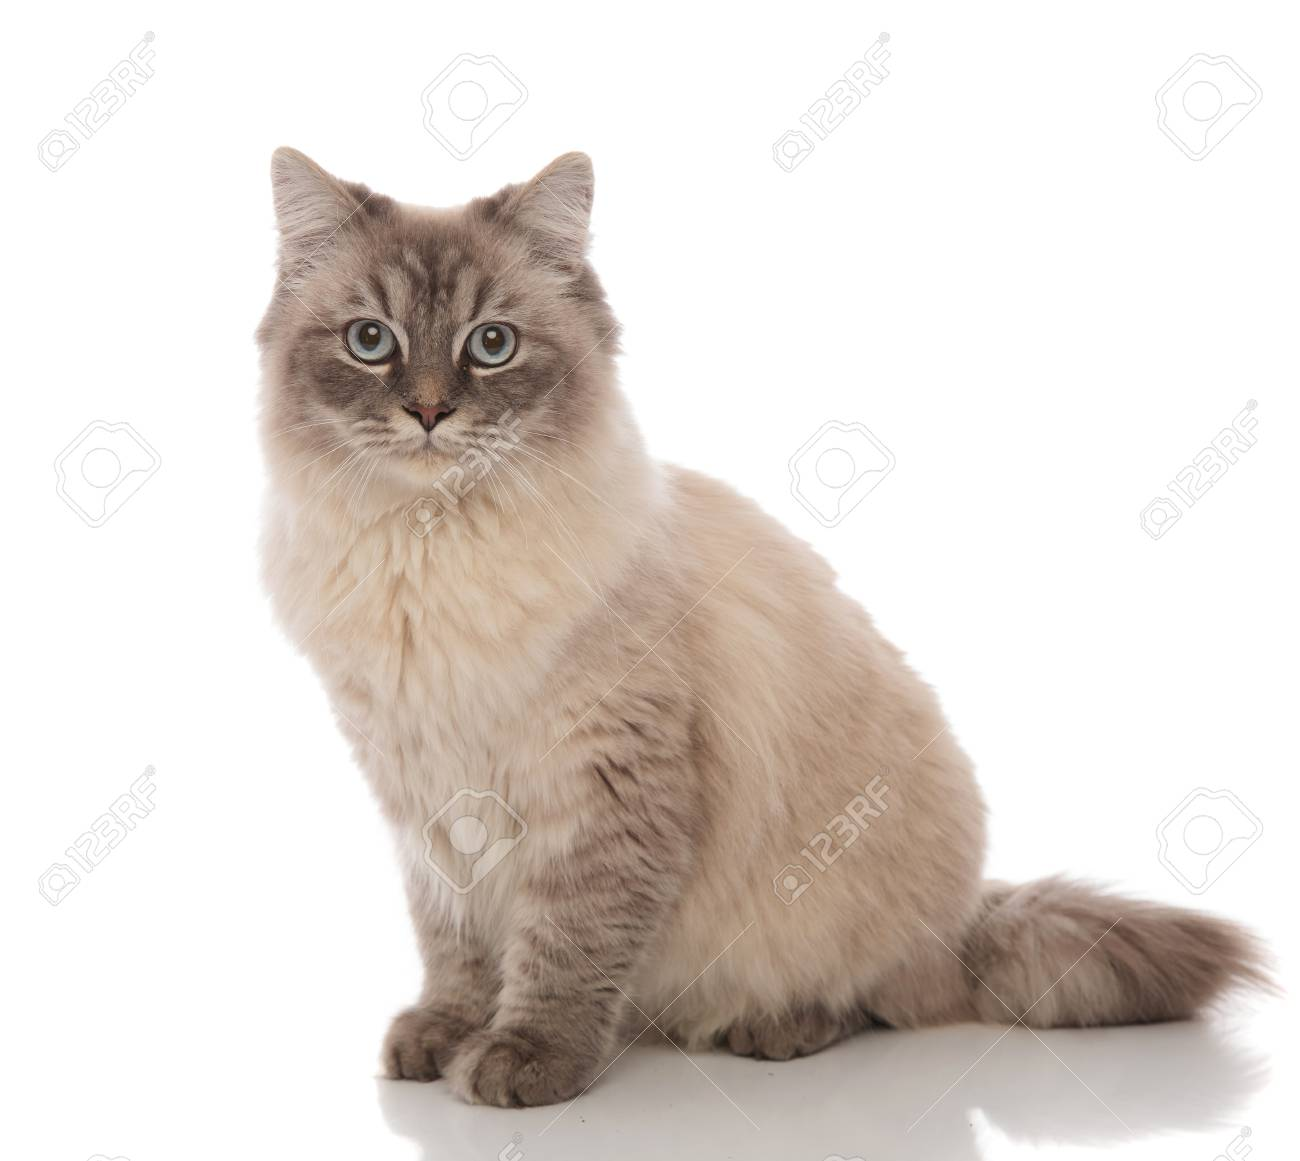 adorable grey cat with blue eyes sitting on a white background - 99575777